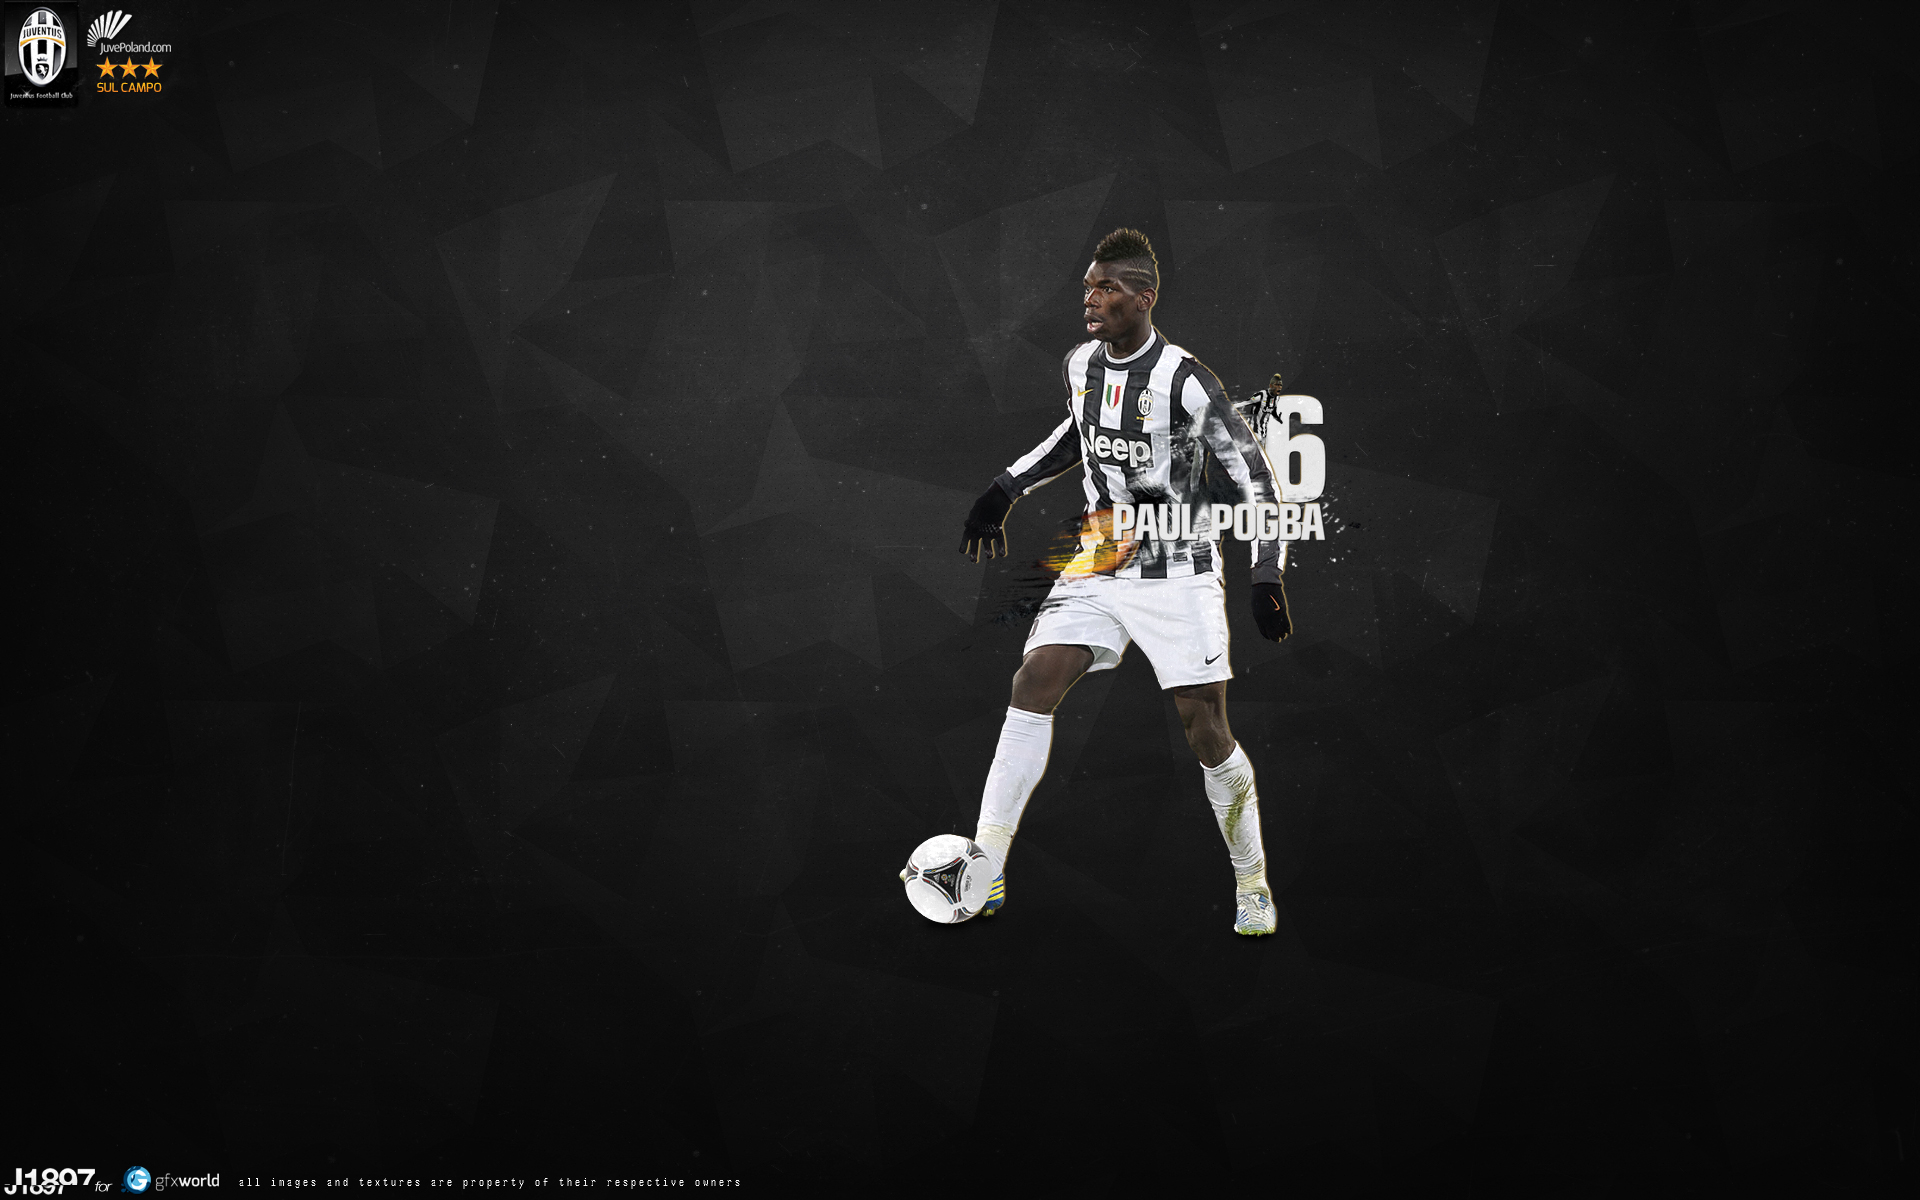 Paul Pogba Wallpapers High Resolution And Quality